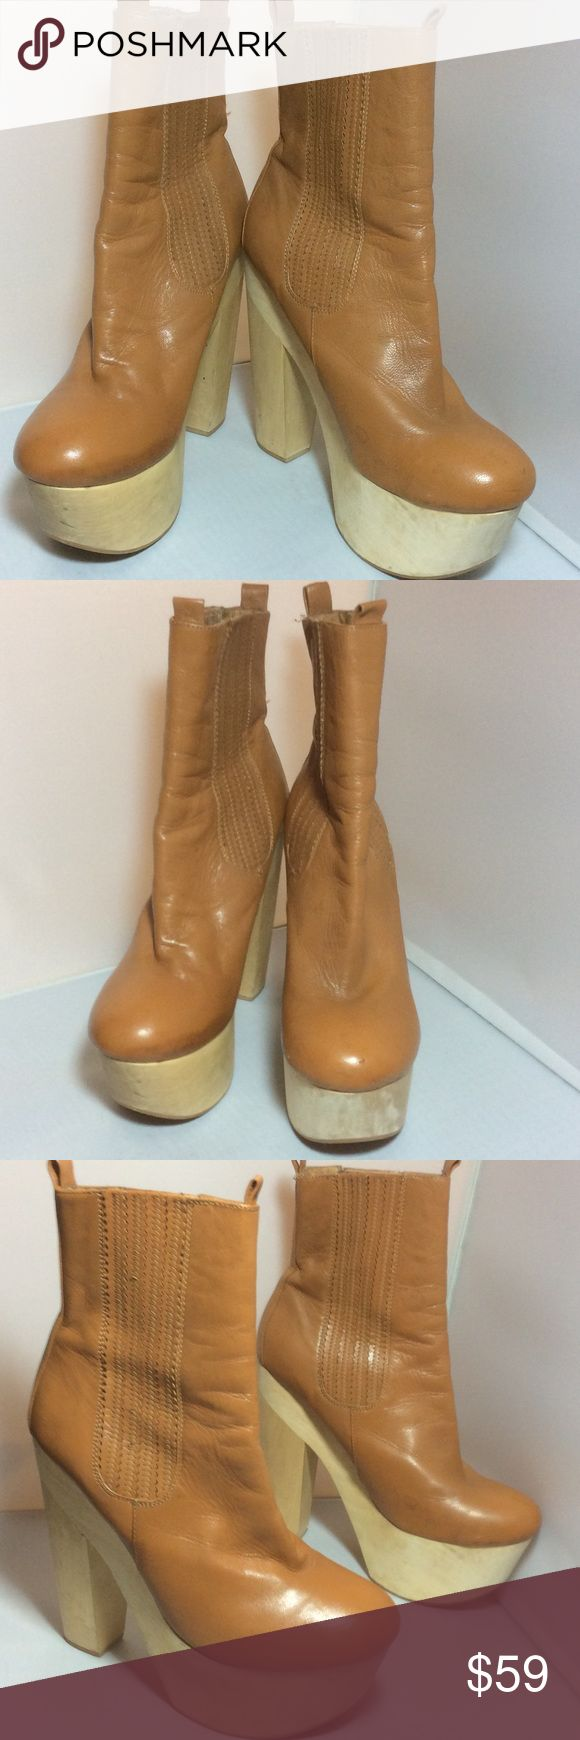 """Chloe Sevigny Mary Jo Tan Platform Booties 10 Flaw Chloe Sevigny Mary Jo Tan Platform Booties 10 Flawed 6"""" wooden heel with 2"""" platform. They are so beautiful but they have been abused so they have flaws and stains NO TRADES PRICE IS FIRM. Opening Ceremony Shoes Ankle Boots & Booties"""